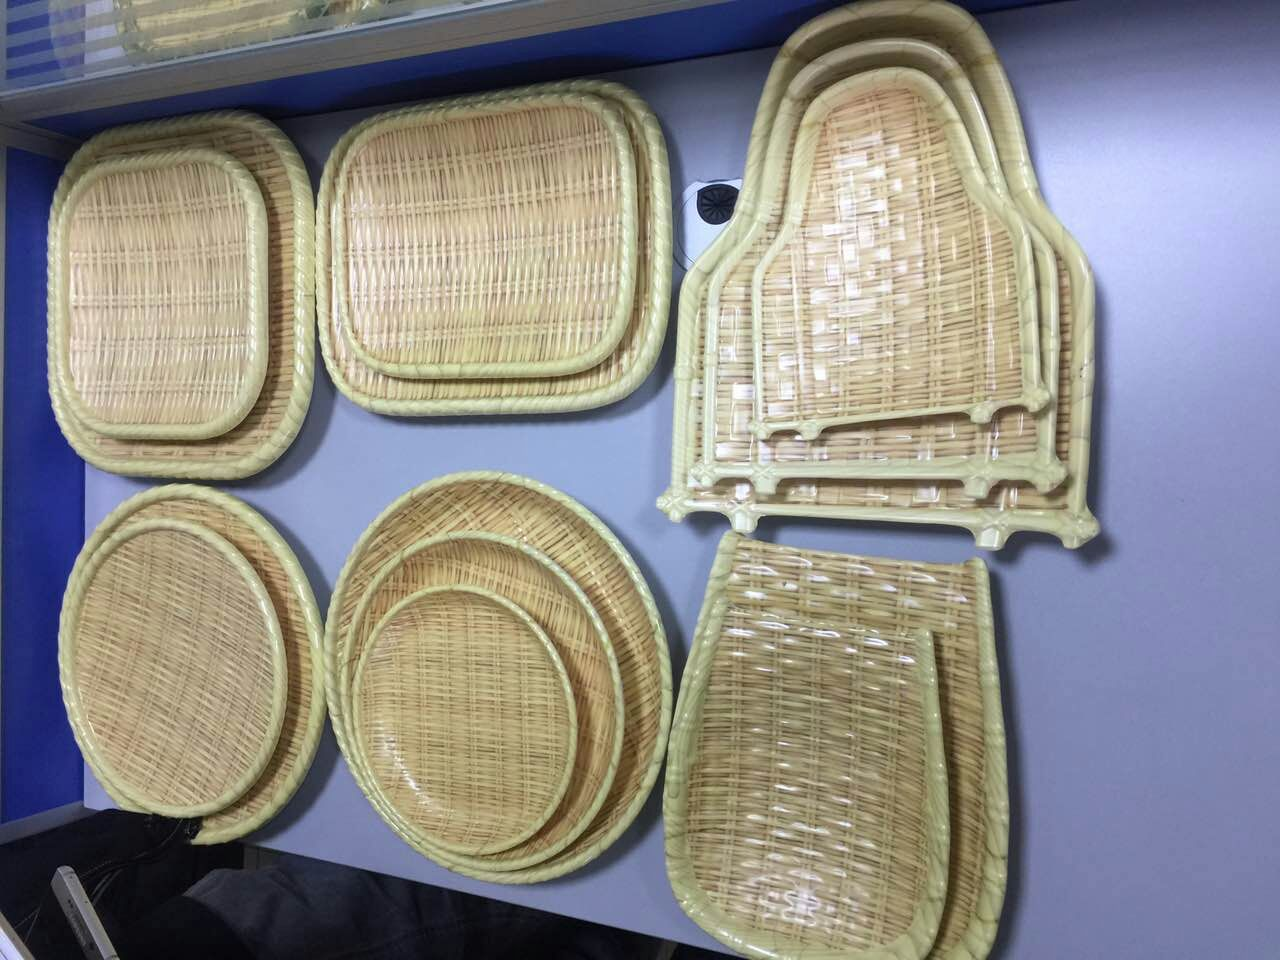 India's anti-dumping final ruling on melamine tableware and kitchenware